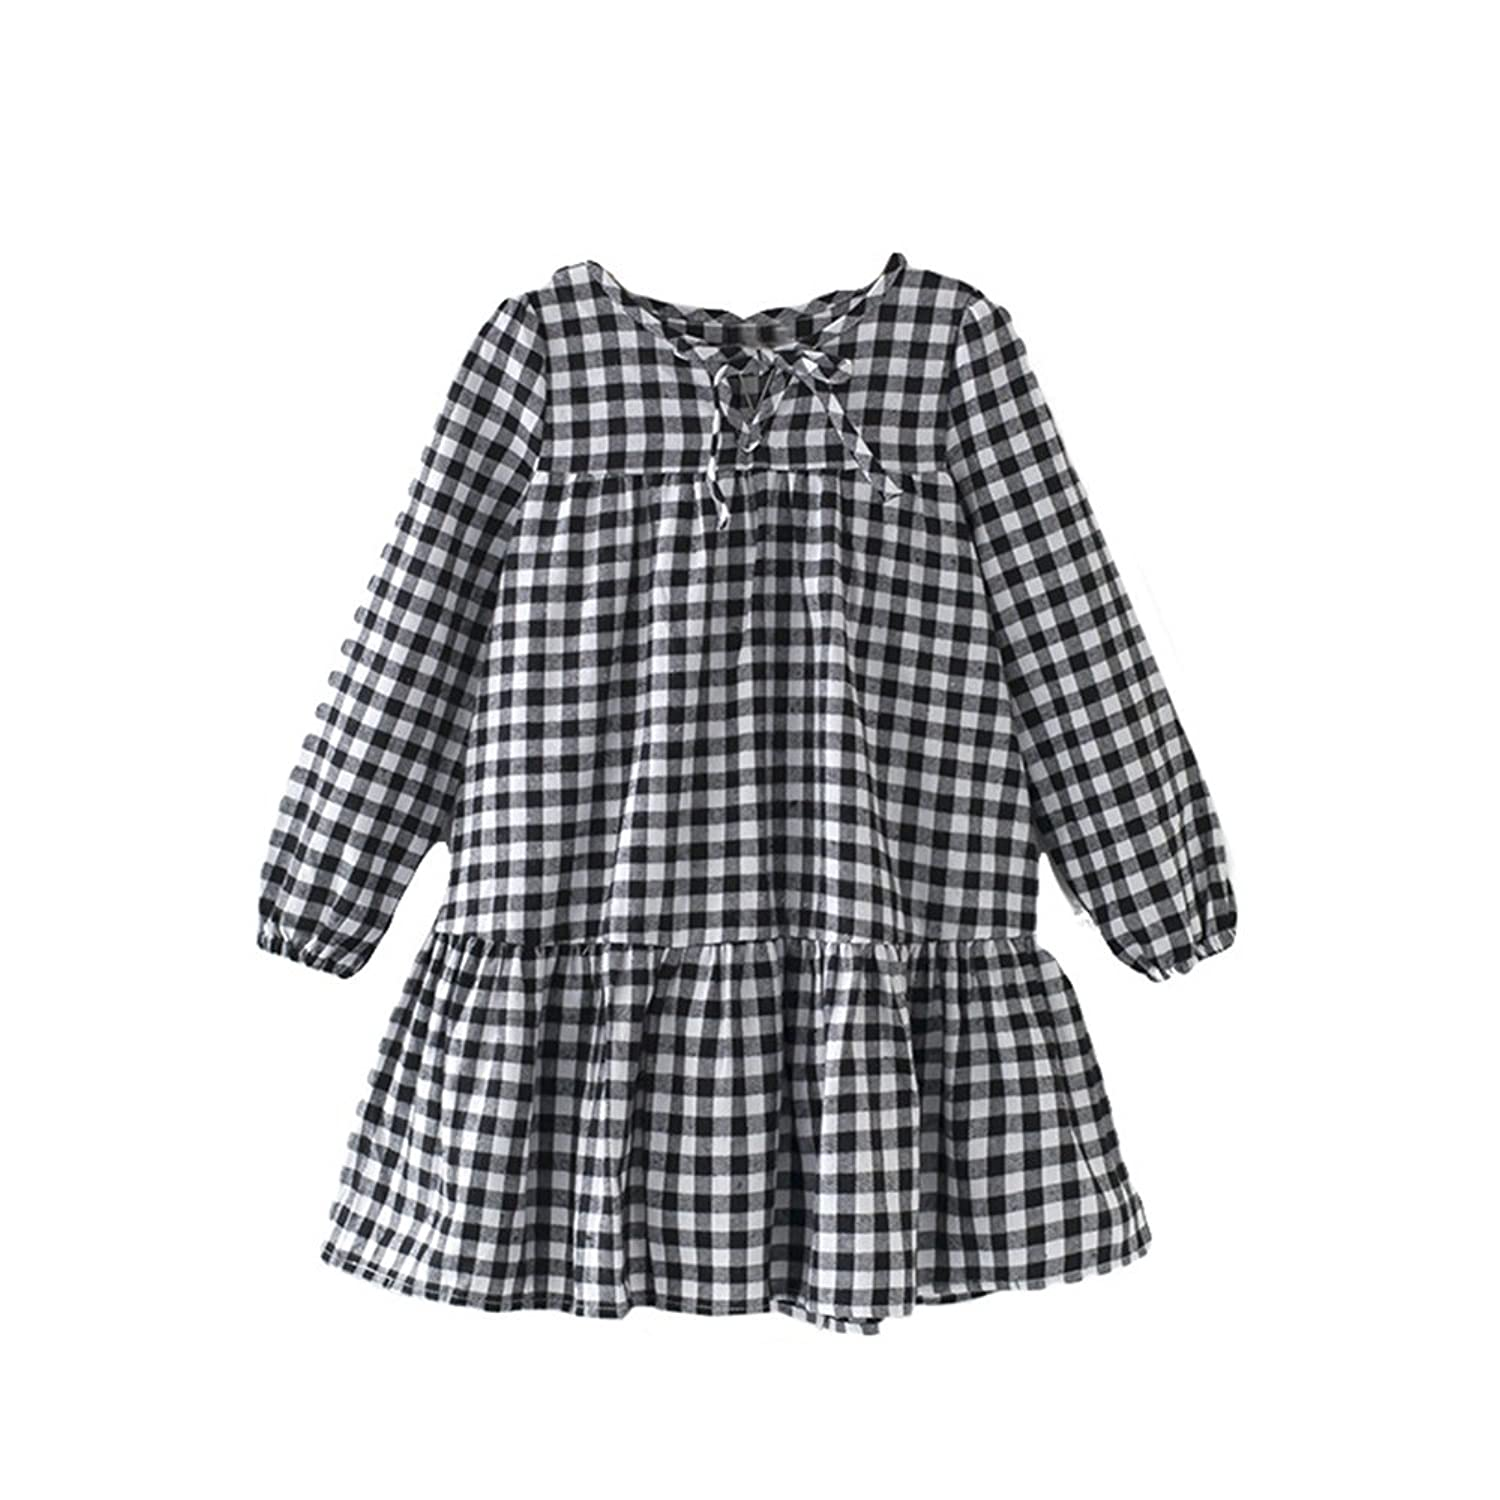 MyCU Kids Cute Clothes,New Baby Girls Dress,Thickened Plaid Skirt?Black and White lattices?8Years-14Years